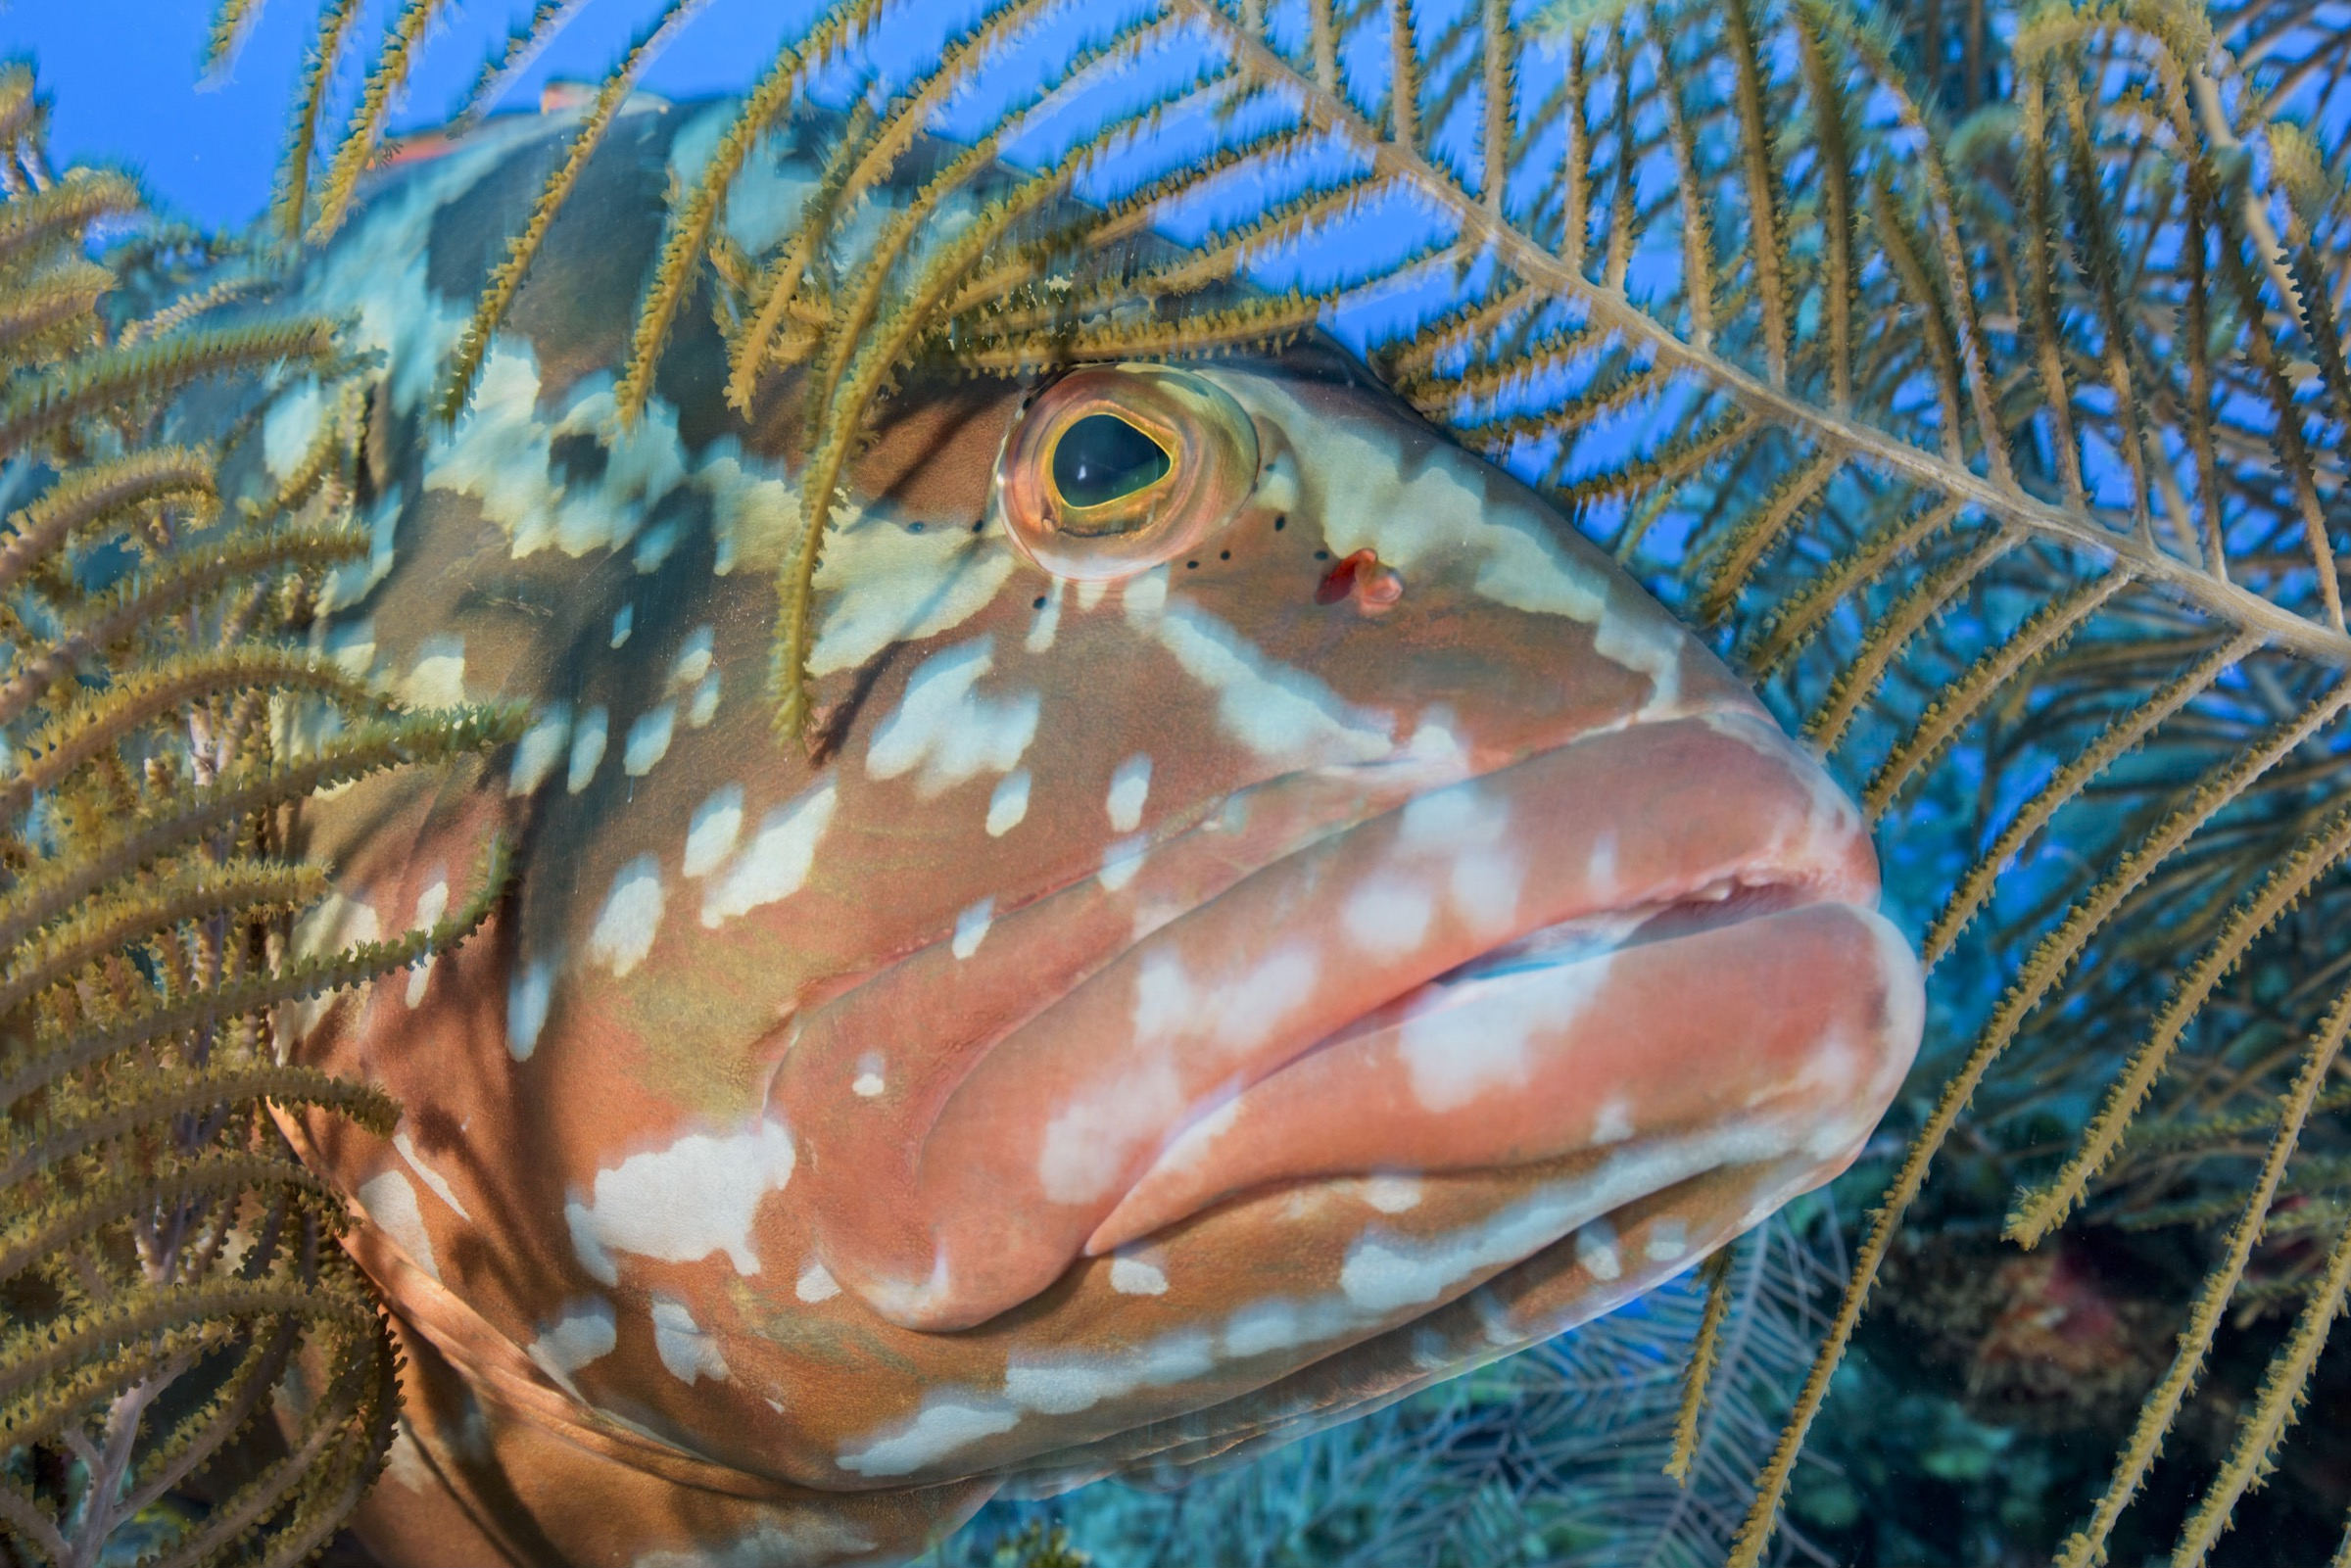 Large predatory fish, like this Nassau grouper (<em>Epinephelus striatus</em>) that biologist and photographer Octavio Aburto encountered in the Gardens of the Queen, were far less wary than those he's photographed in other parts of the world.